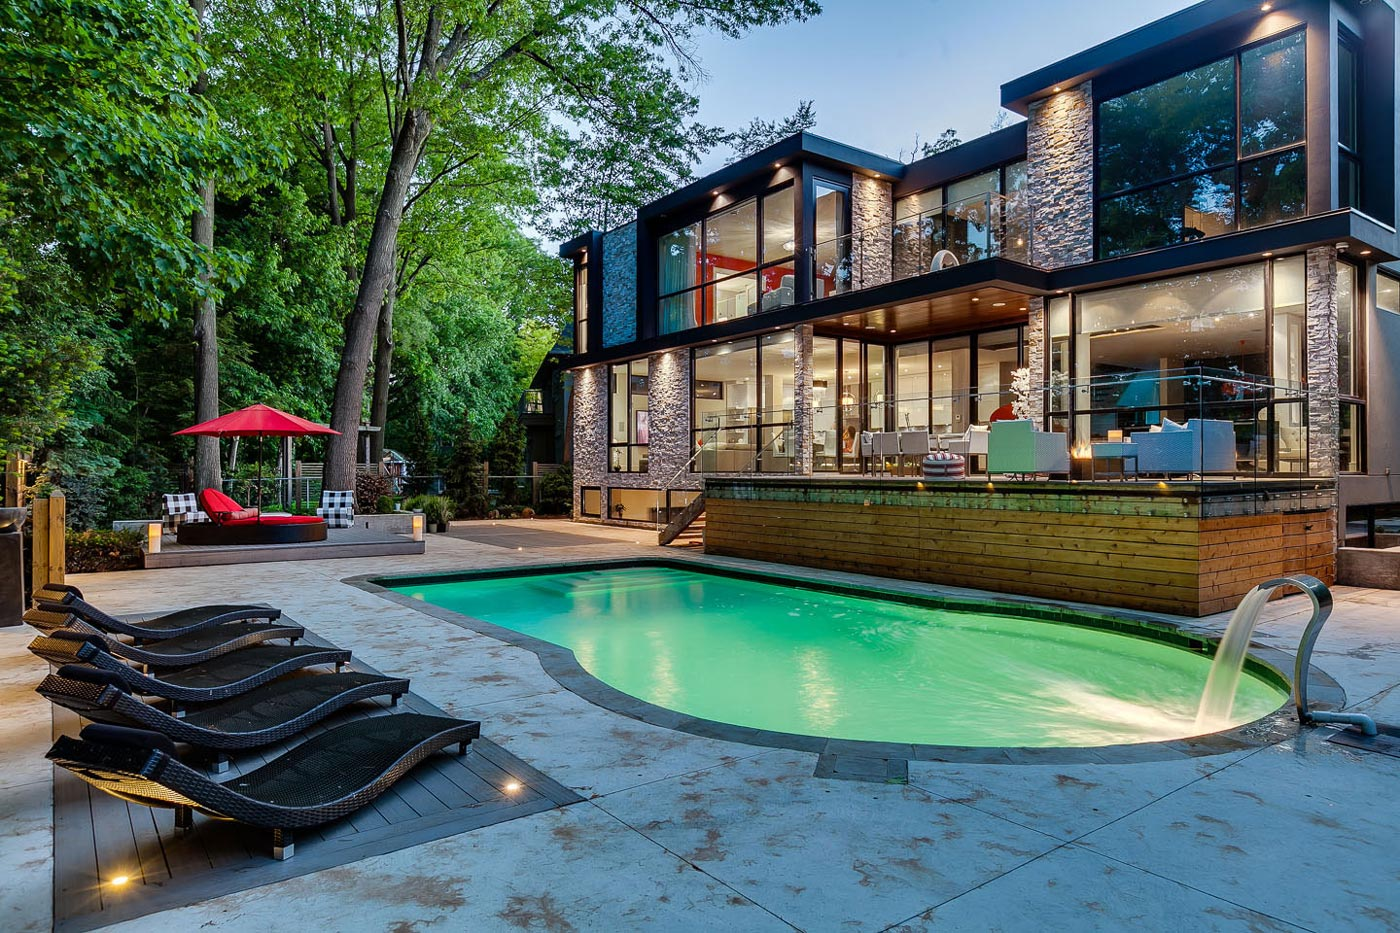 Outdoor Pool, Waterfall, Terrace, Contemporary House in Toronto, Canada